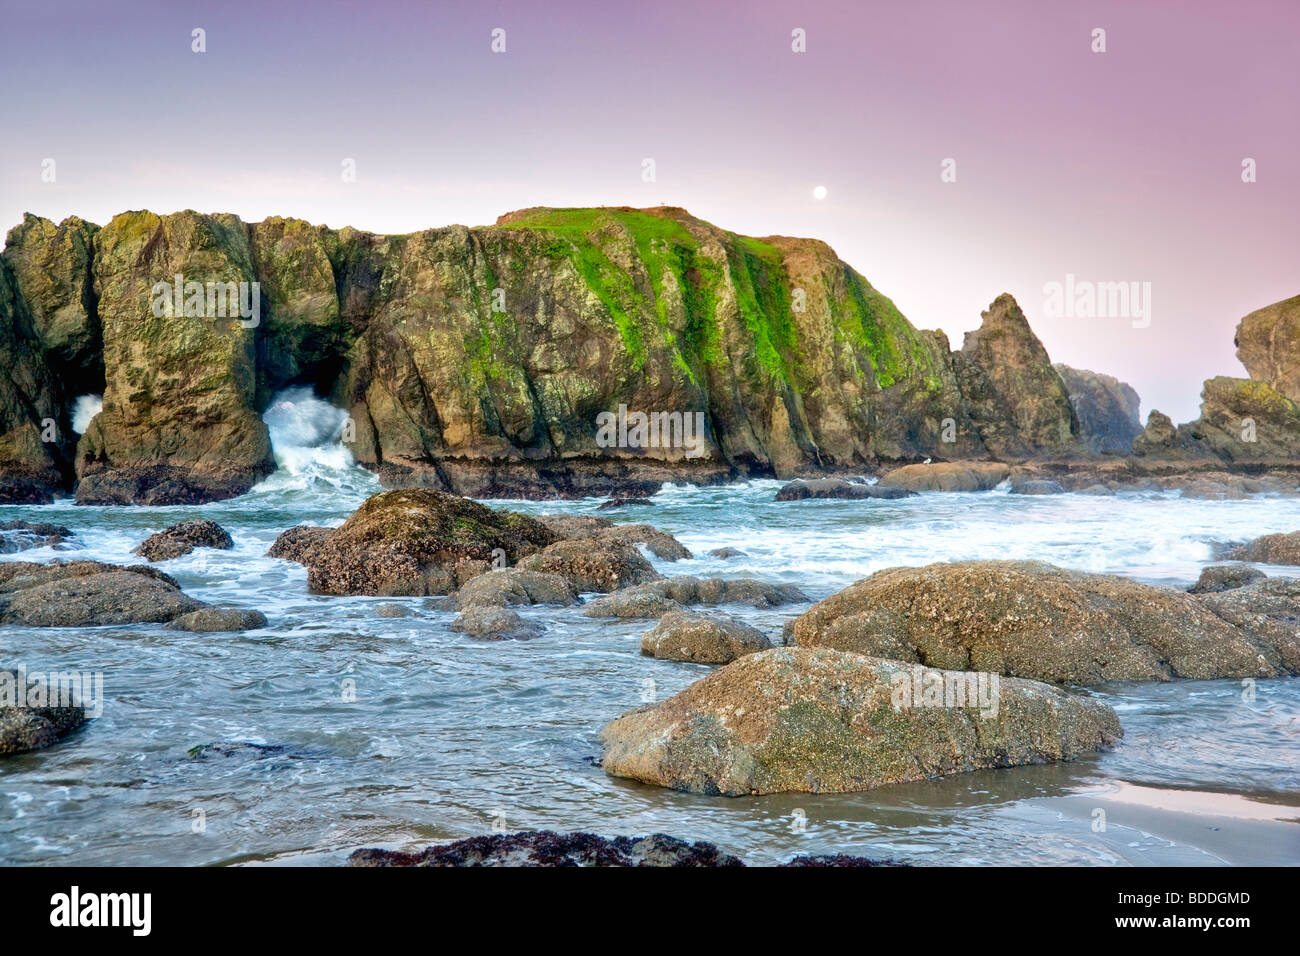 Rocks, moon, low tide and wave at Bandon beach. Oregon - Stock Image